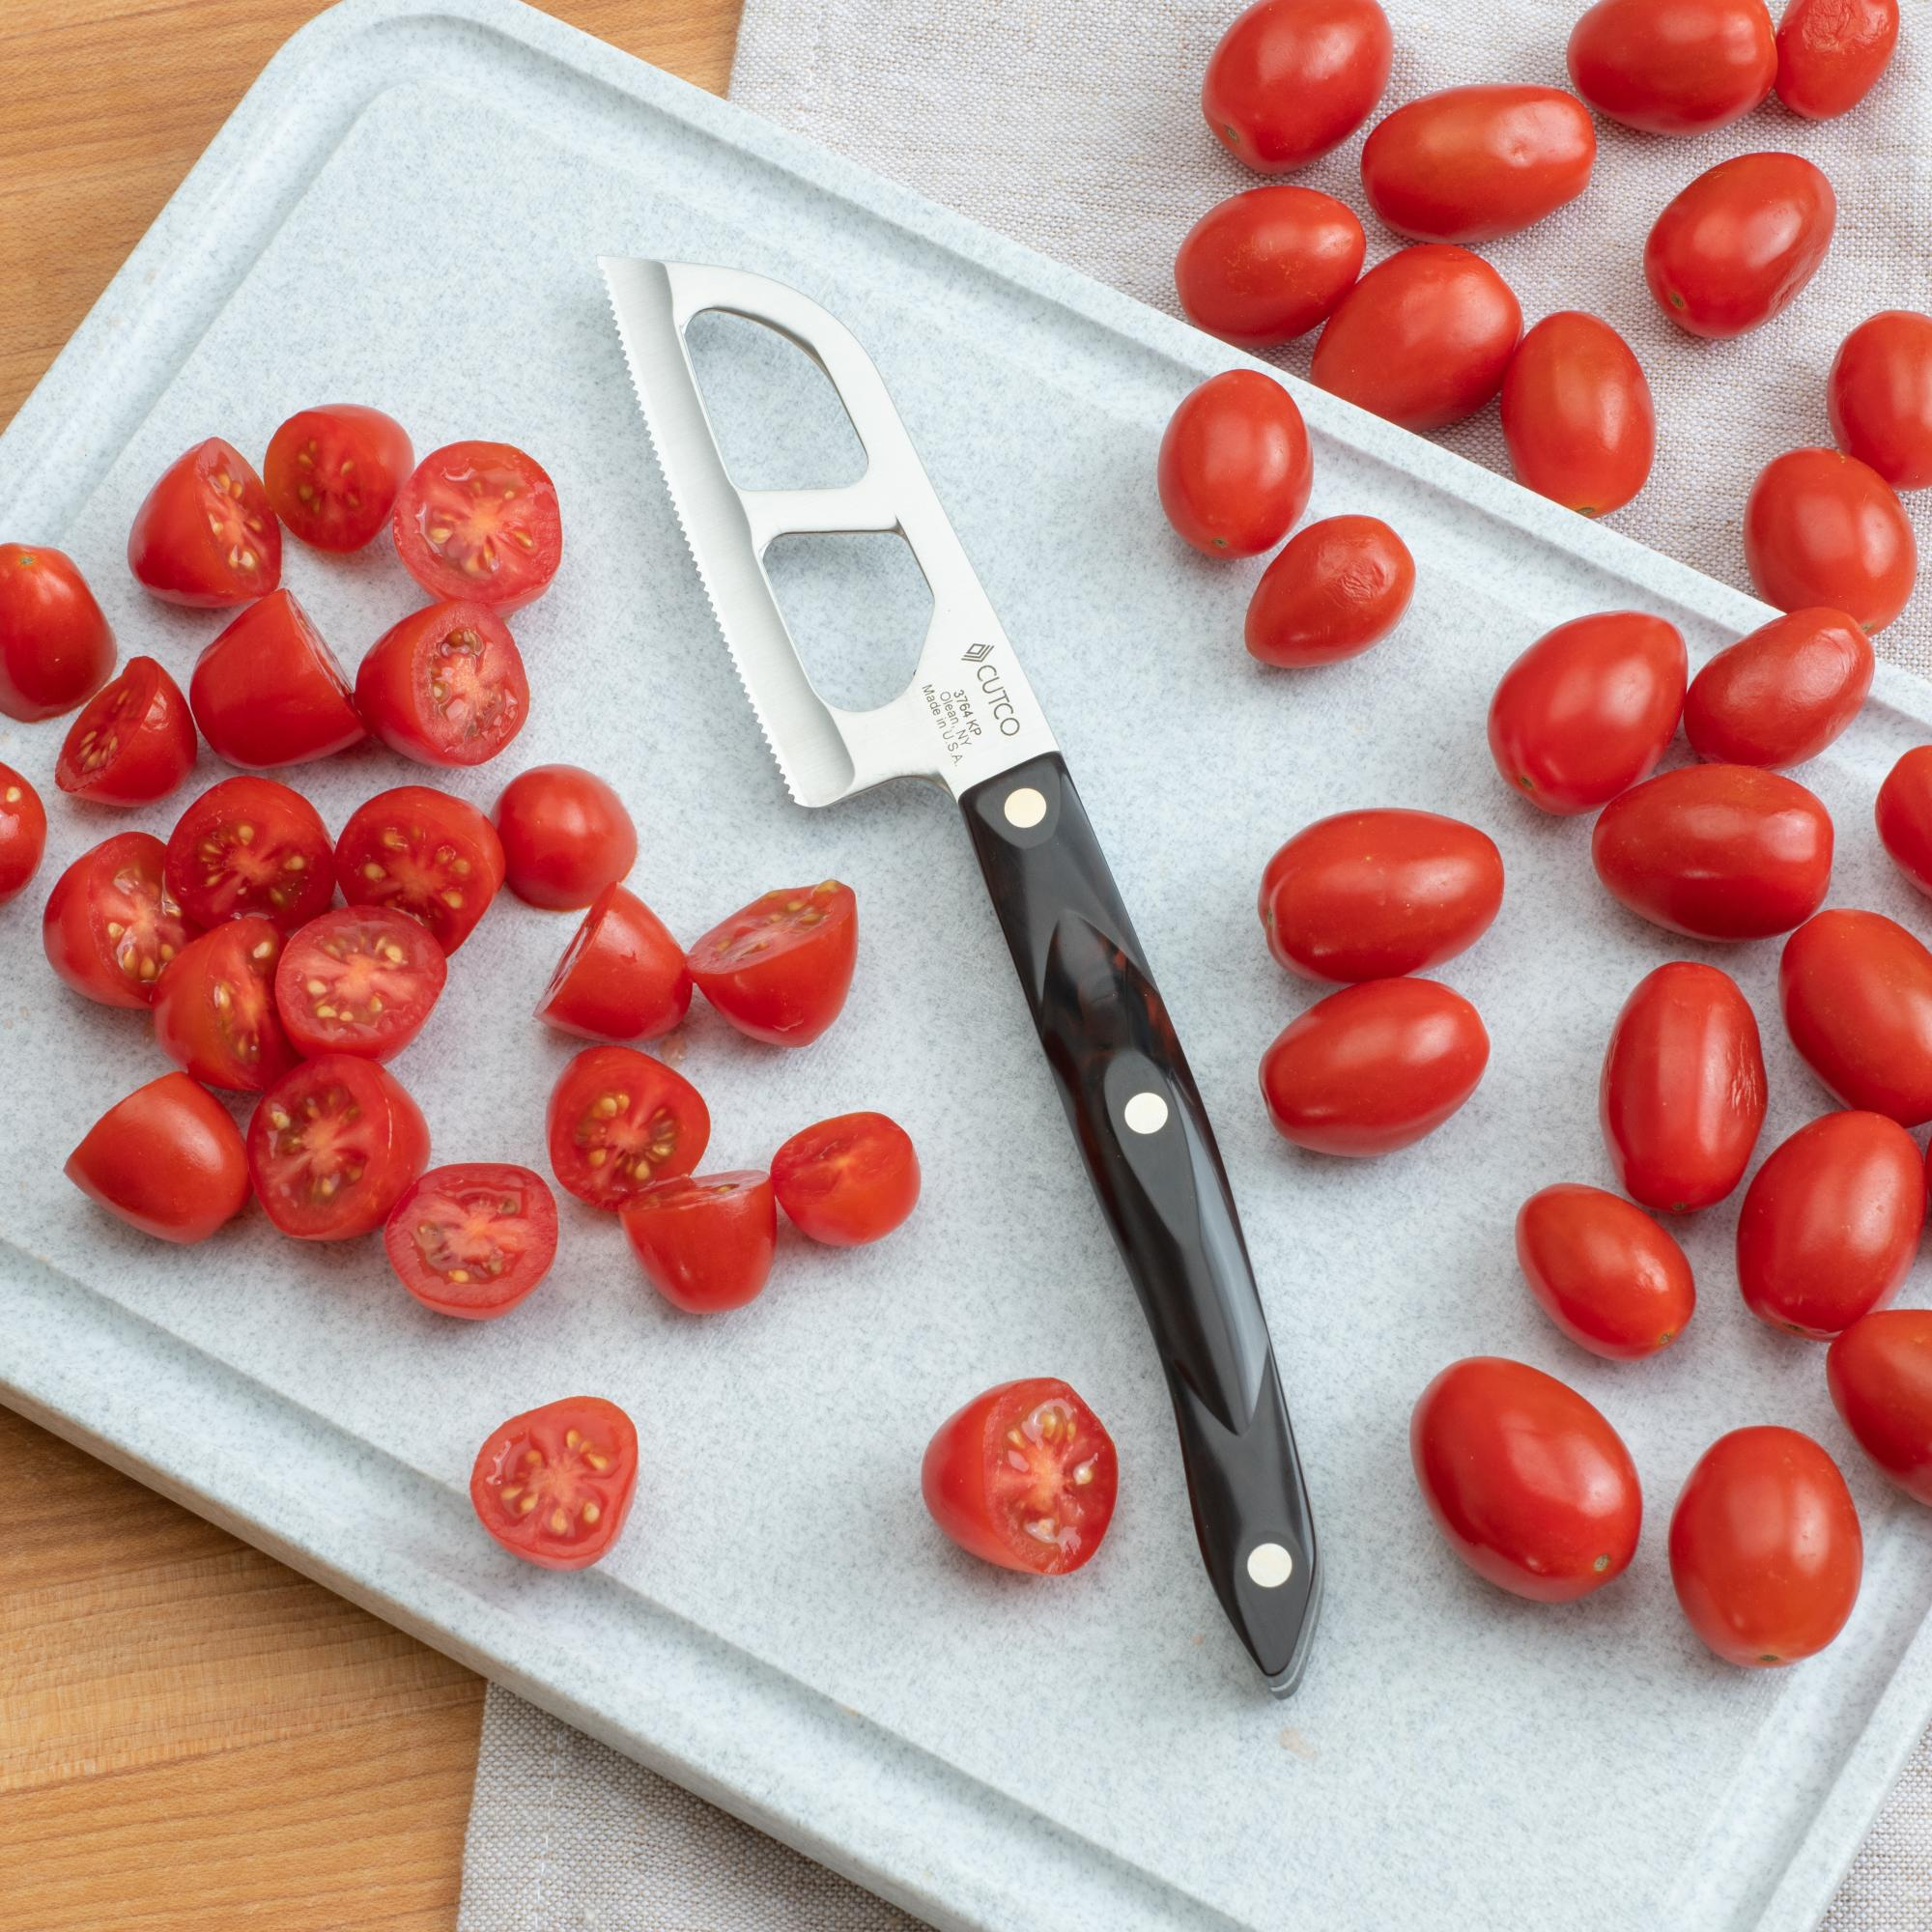 Halving the grape tomatoes with the Santoku-Style Cheese Knife.